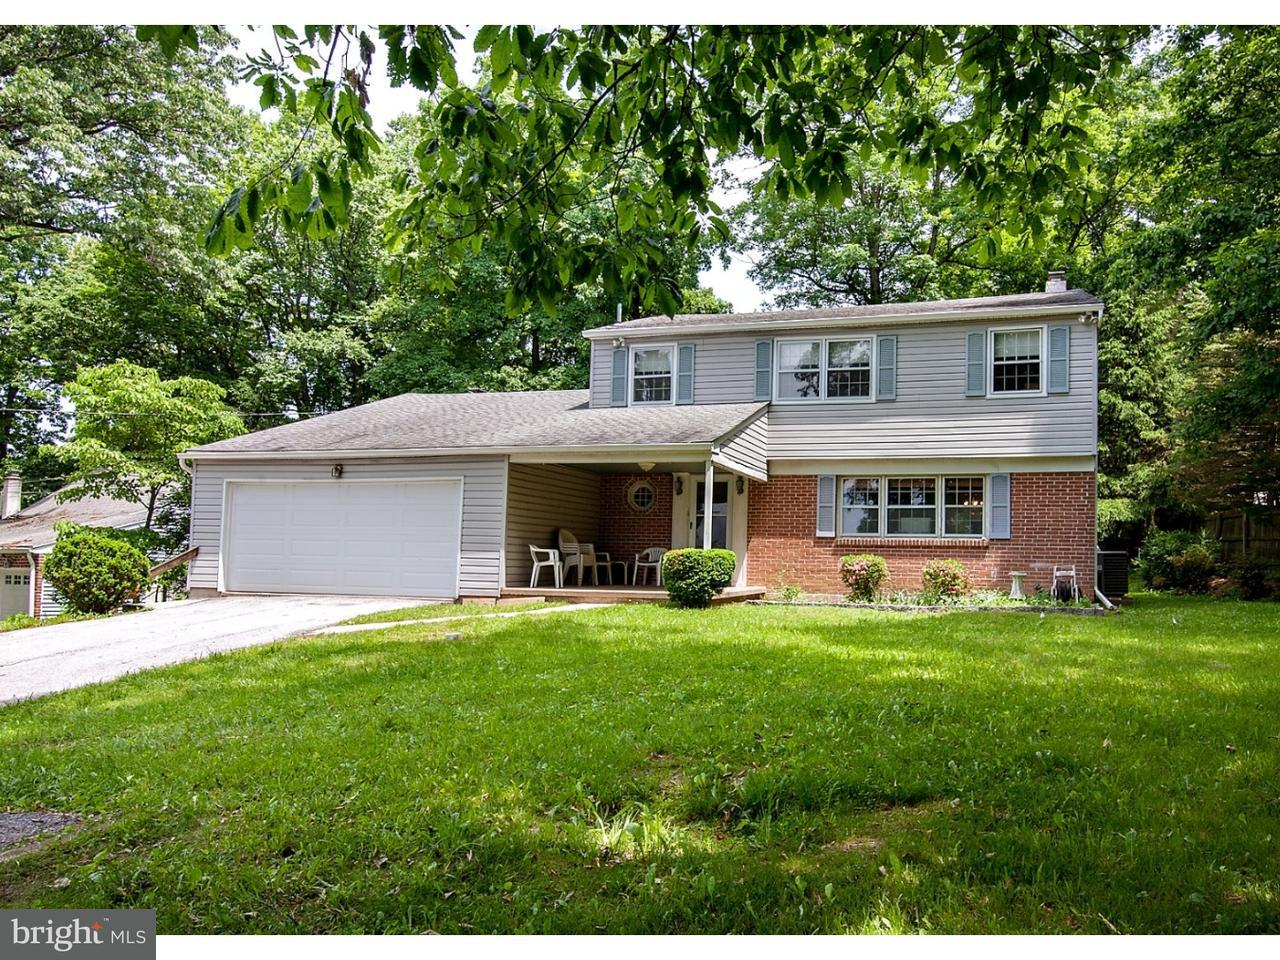 1333  Pottstown Pike West Chester, PA 19380